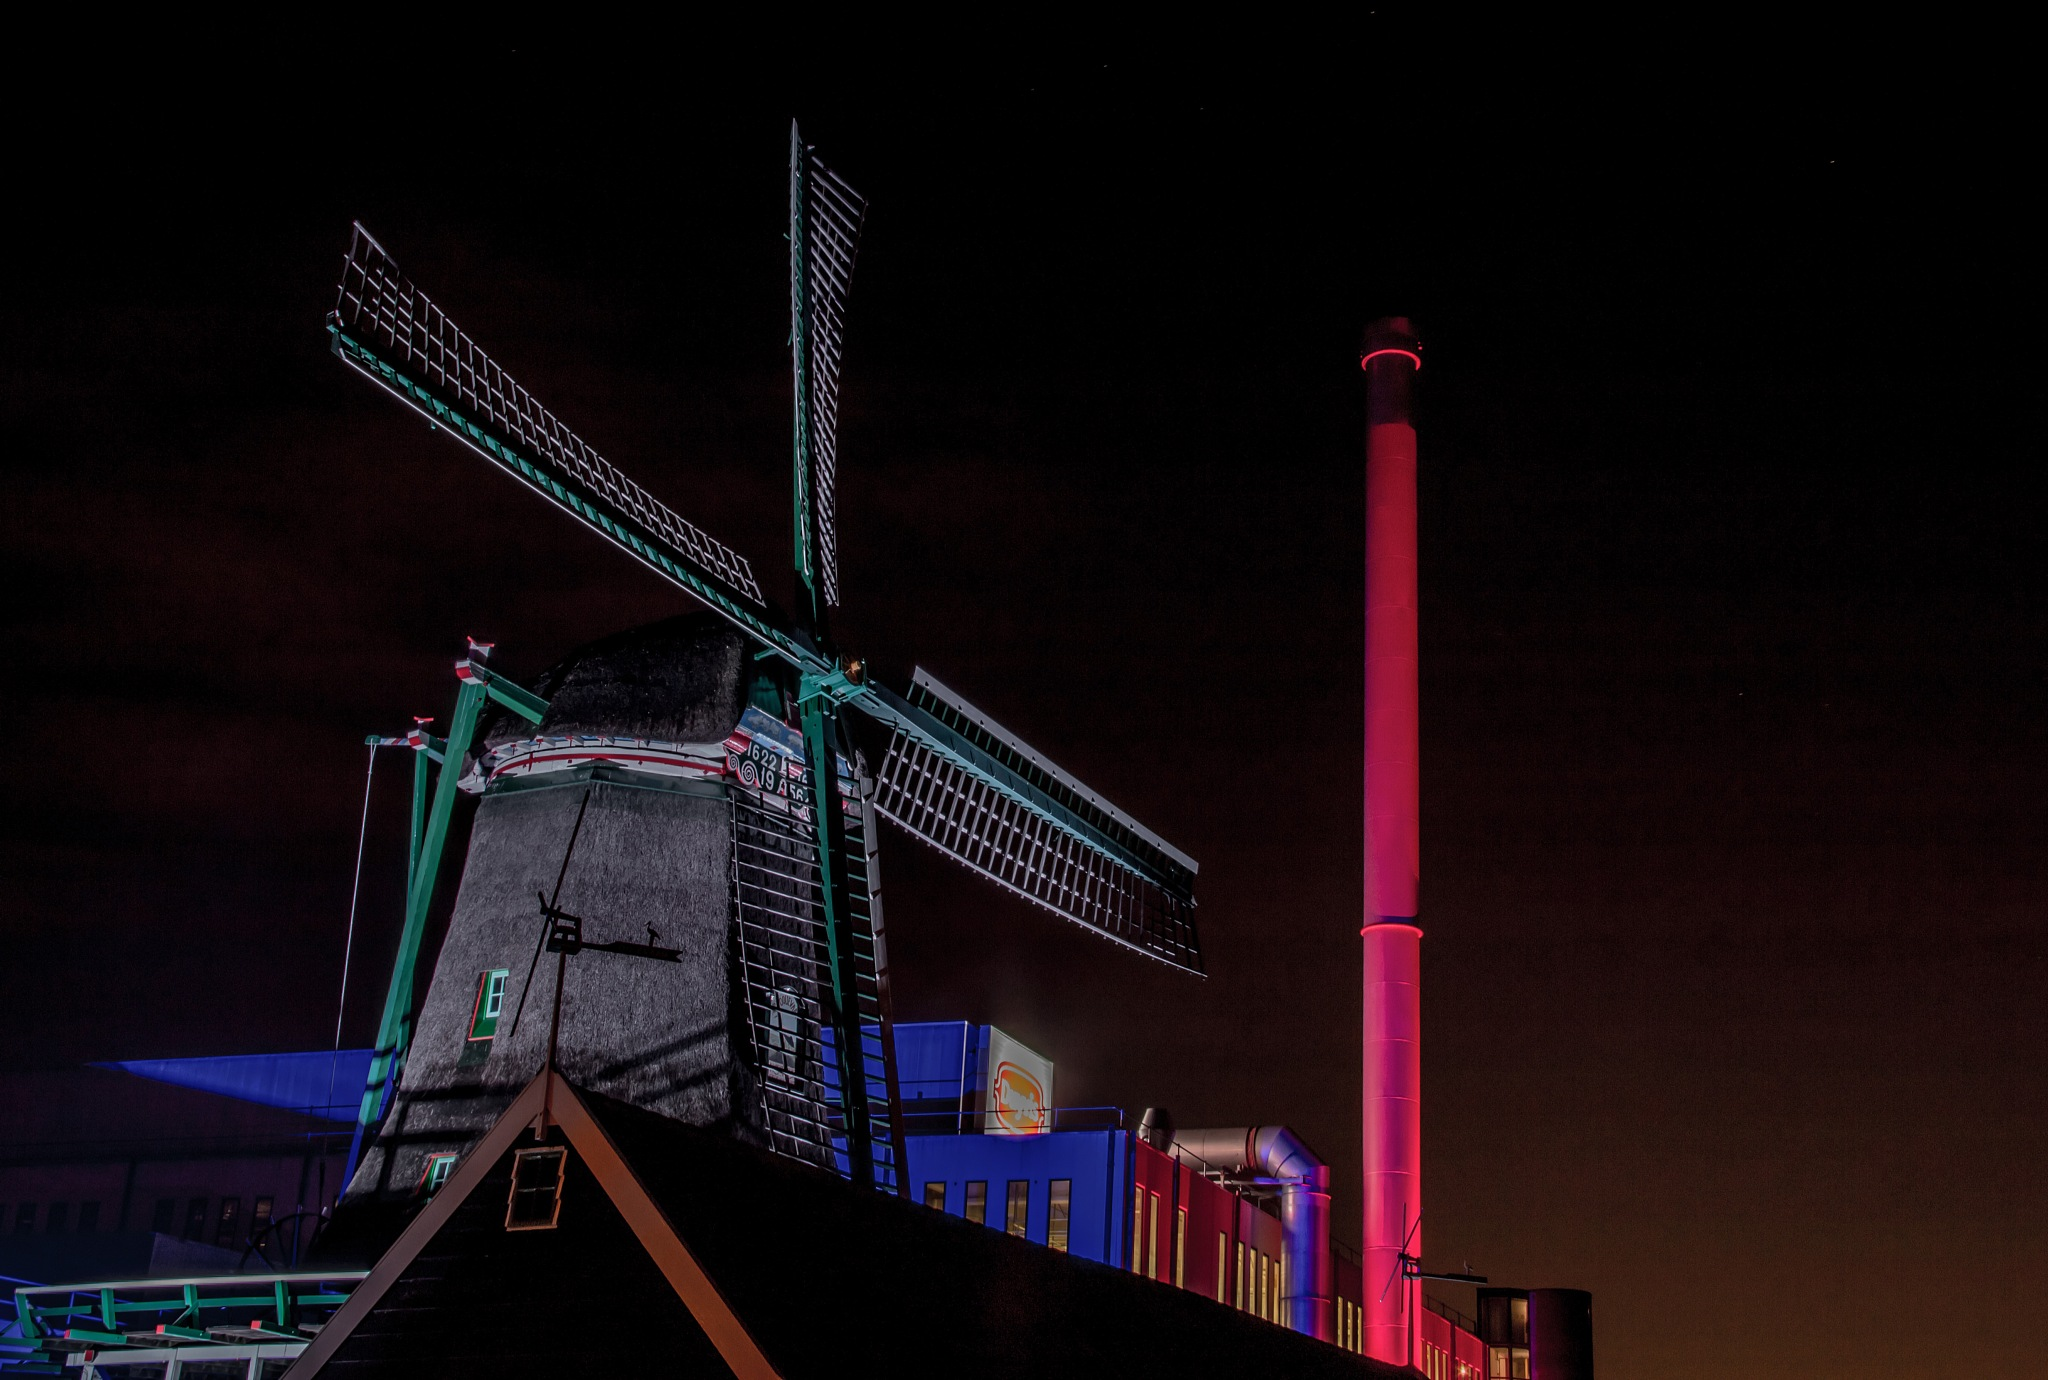 Duyvis Factory with old mill on the Zaan 3 by Sjaak Buis